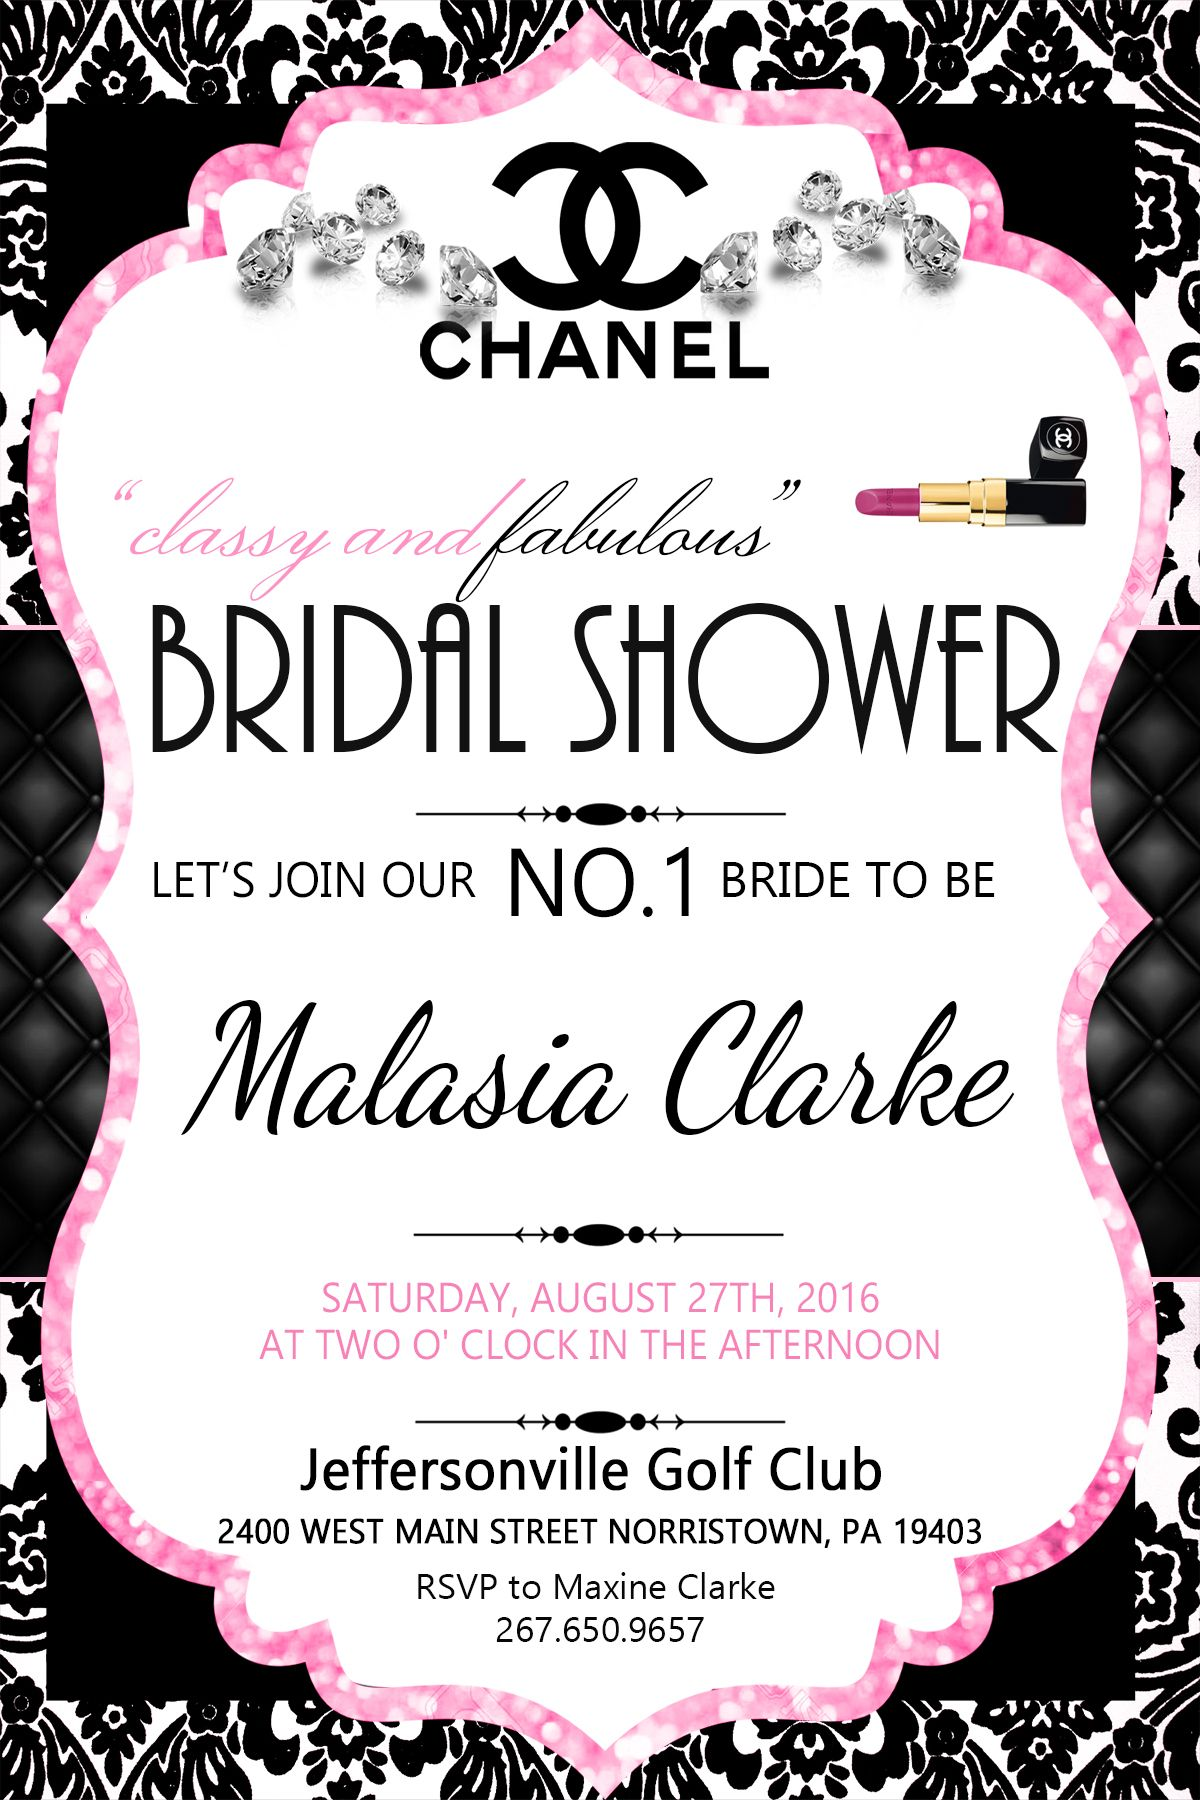 Chanel inspired bridal shower invitation pink black white chanel chanel bridal shower invitations chanel baby shower invitations chanel bridal filmwisefo